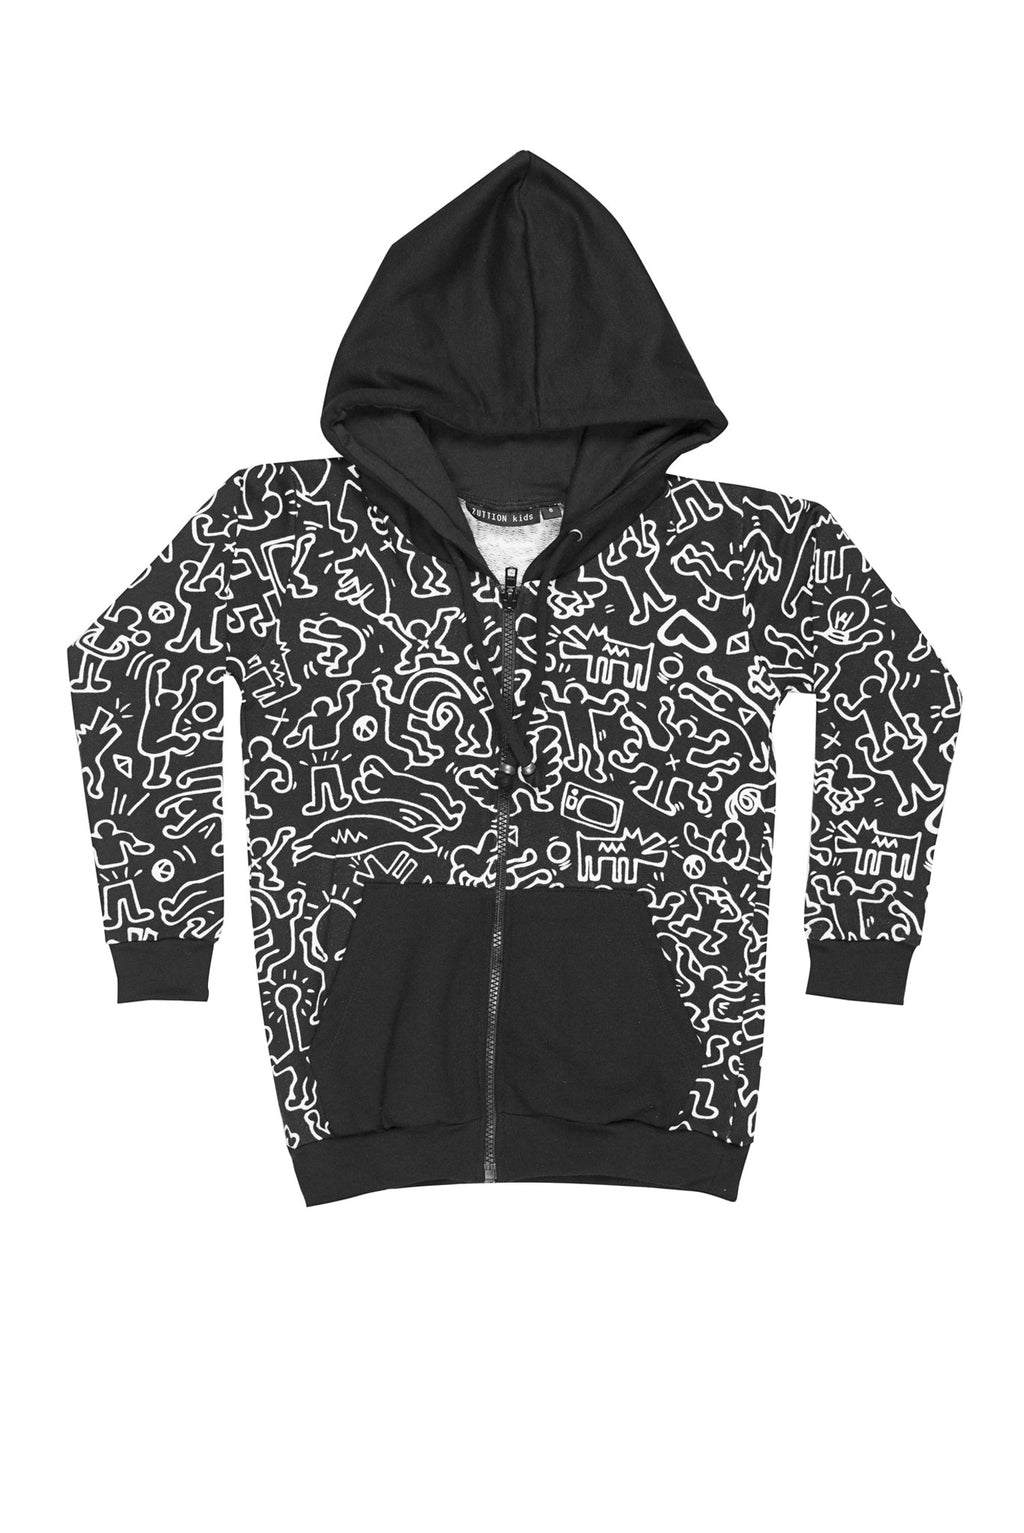 Keith Zip Up Hoodie Black - Zuttion